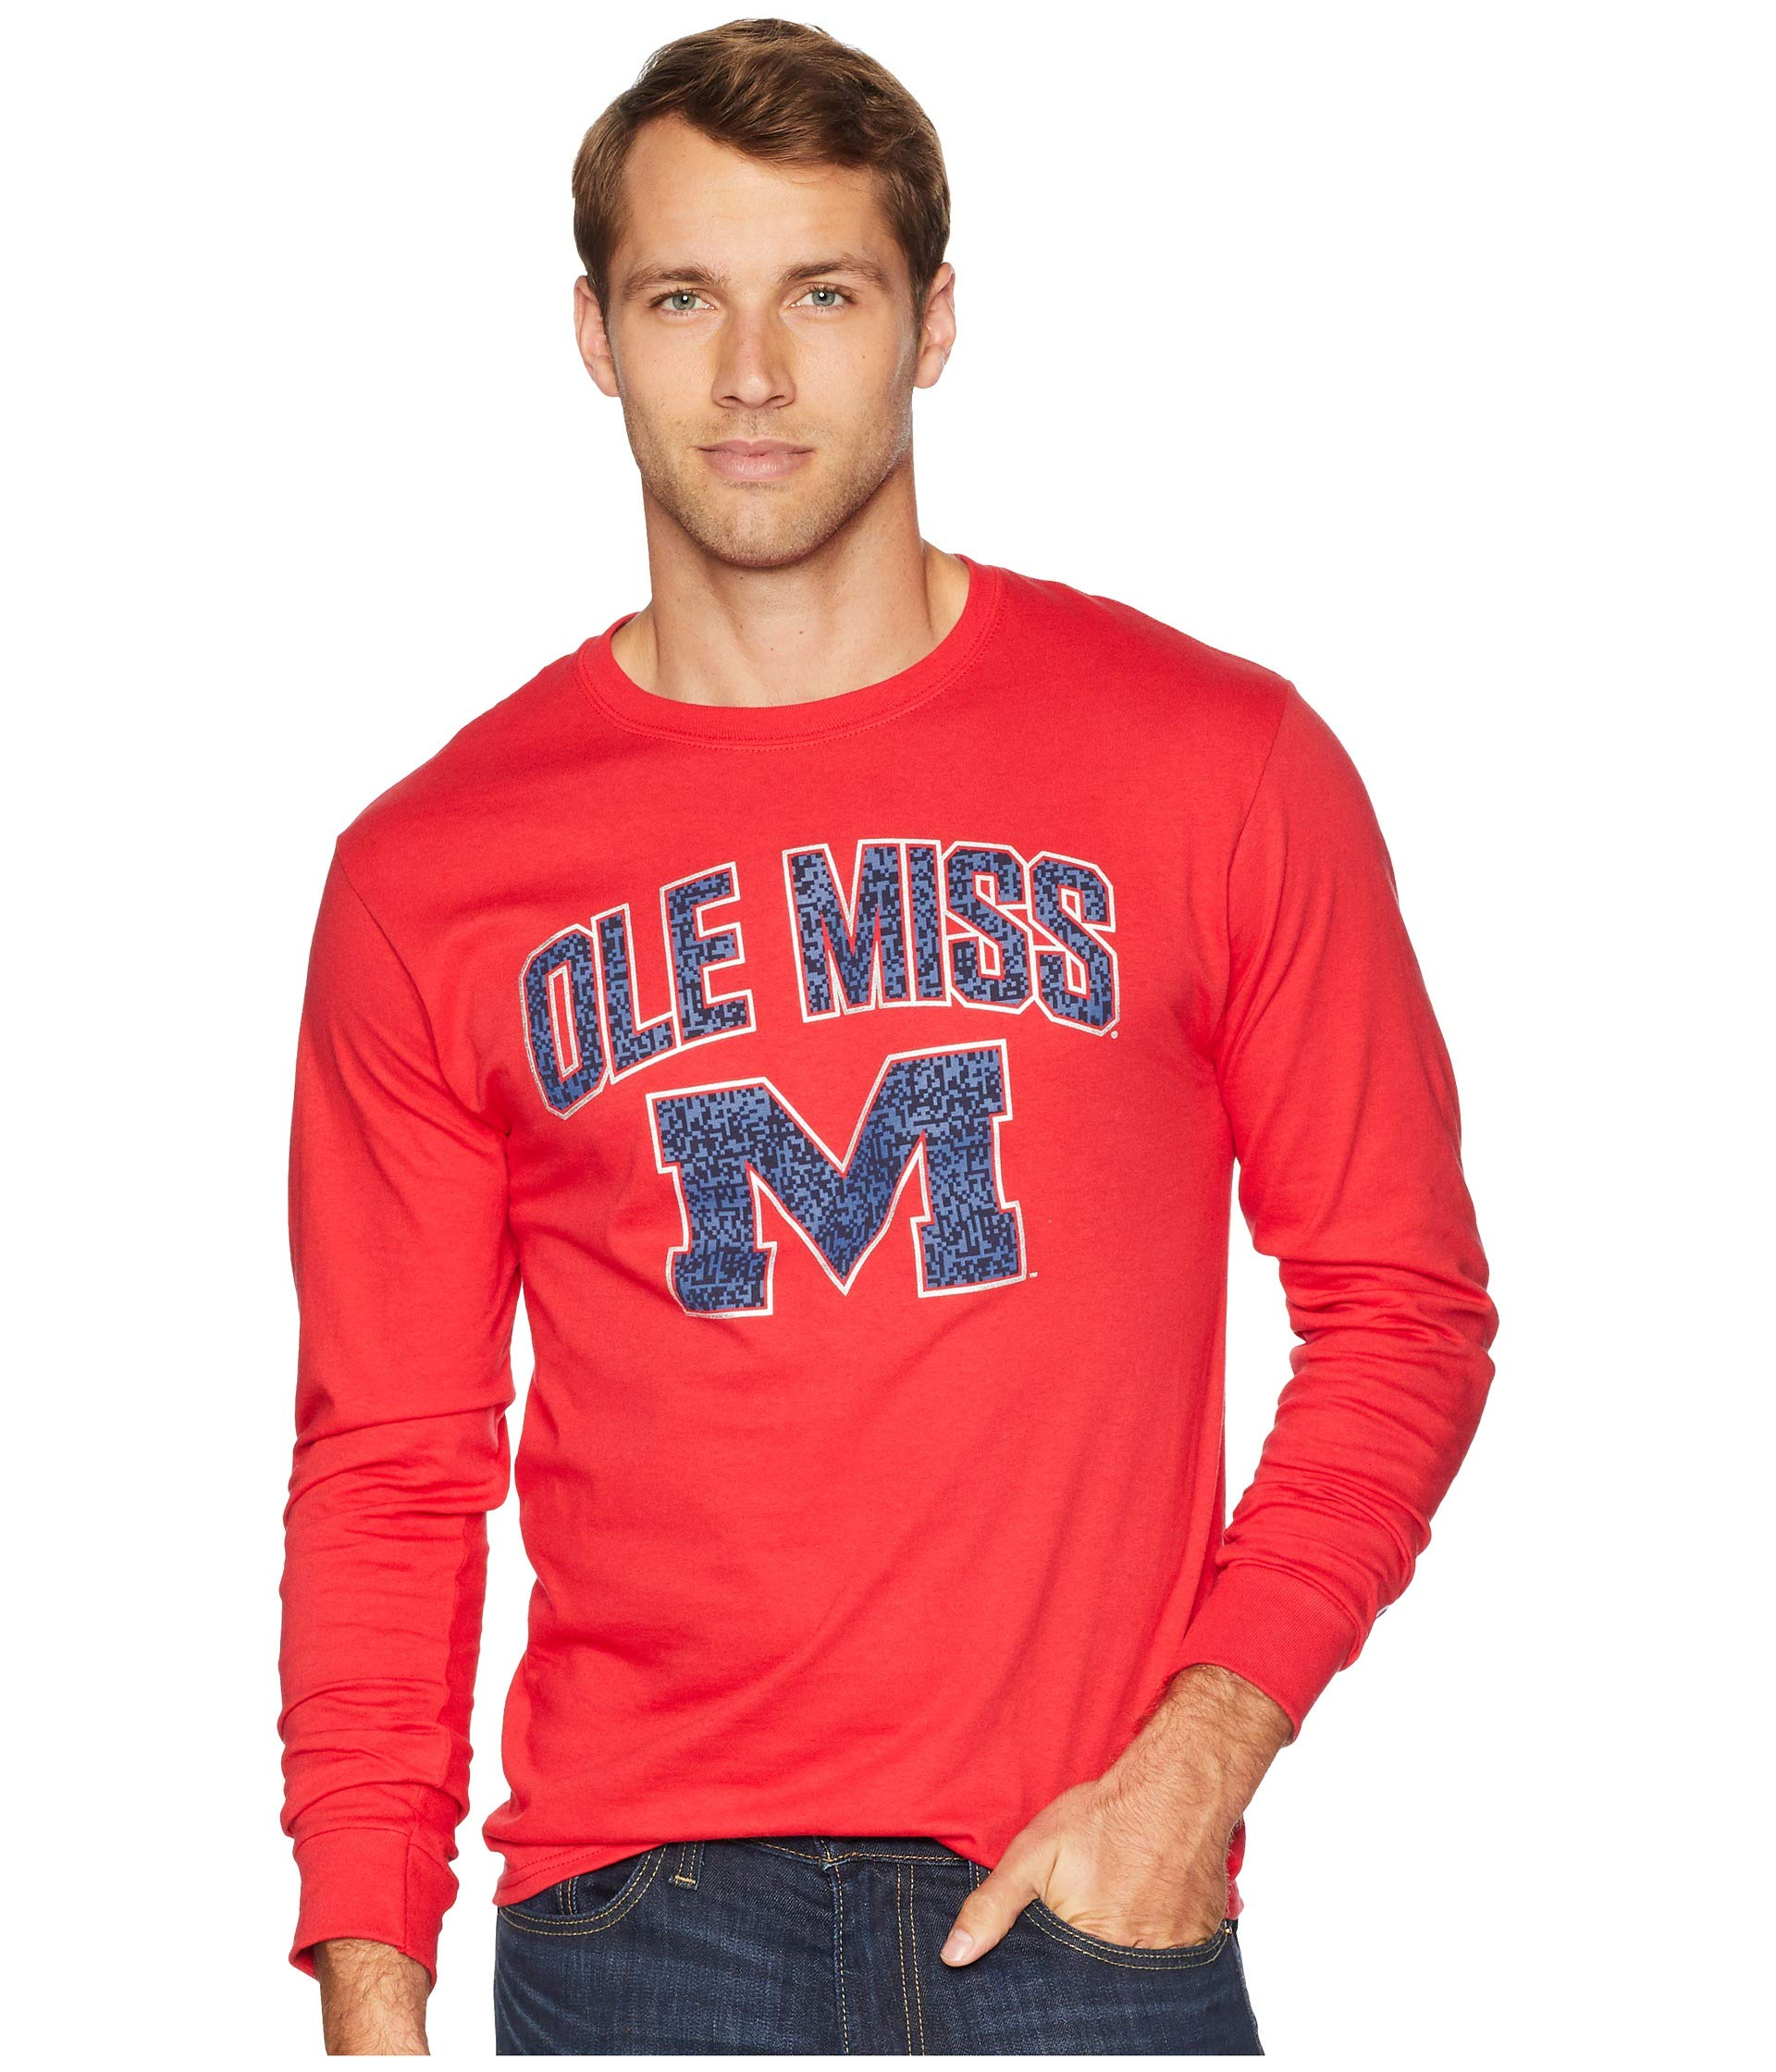 Tee Ole Rebels Champion Sleeve Scarlet Jersey Miss College Long 0qnwp5FO